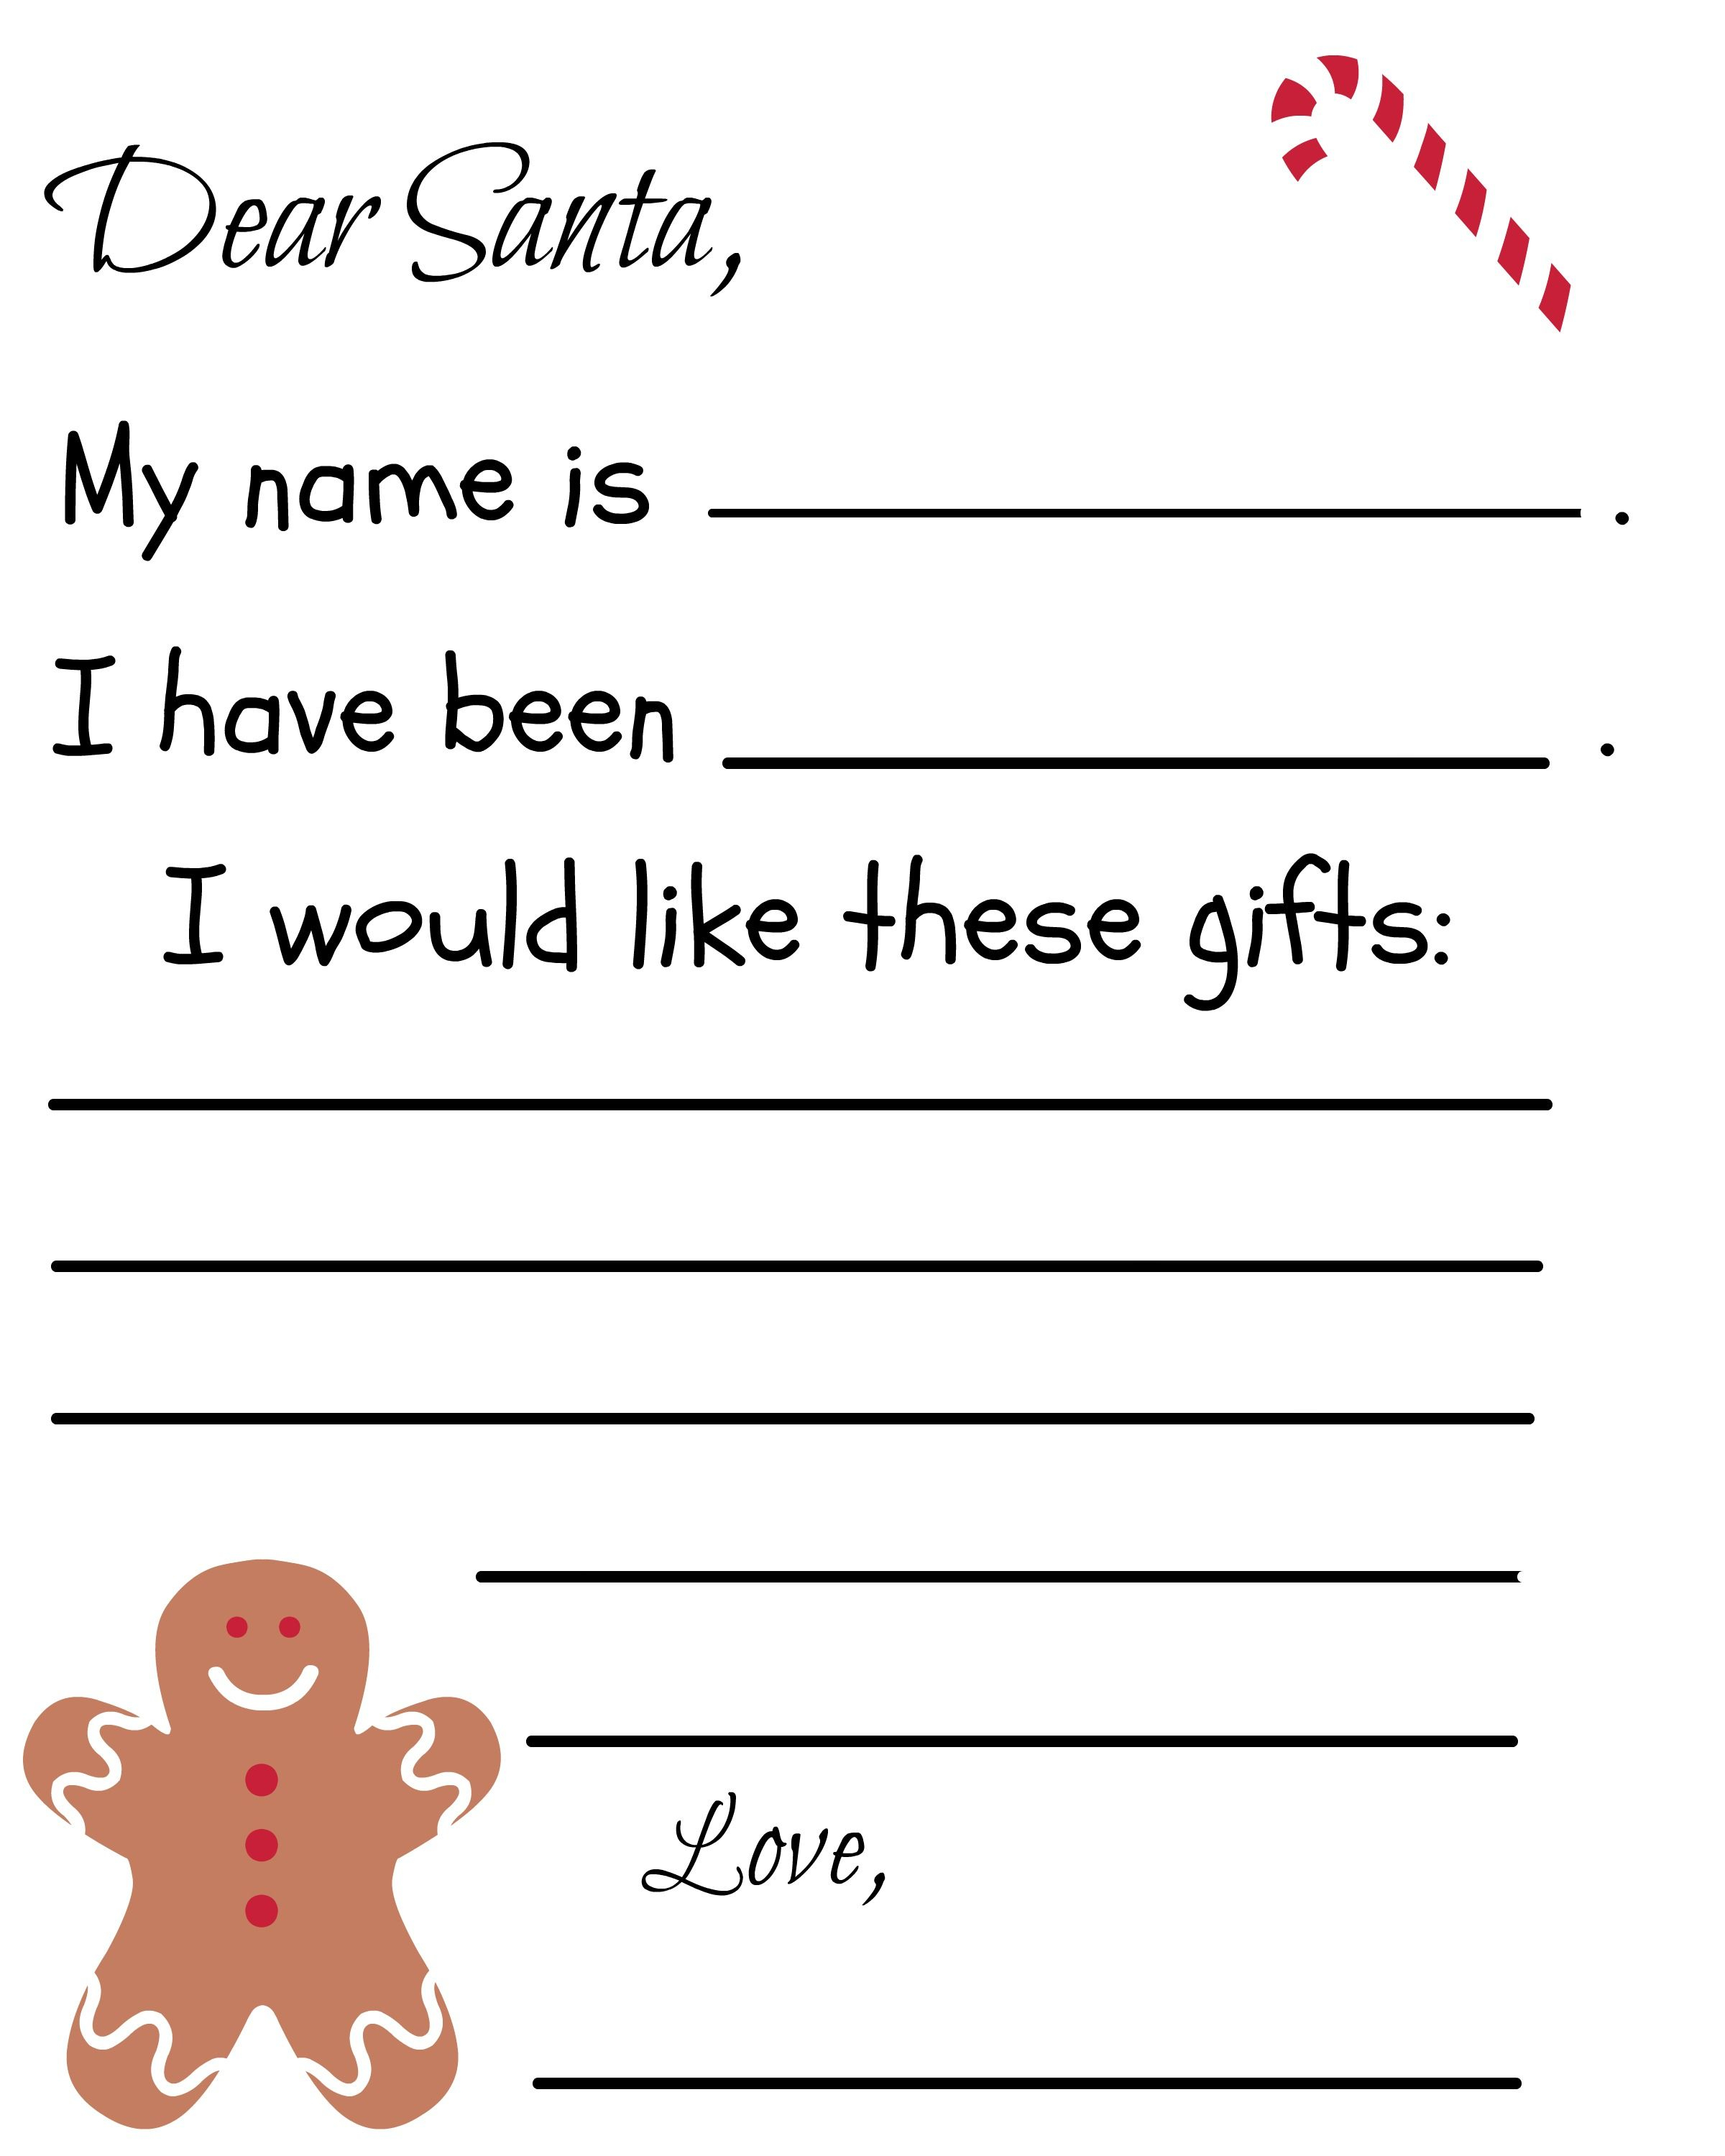 Dear Santa Letter Template Free Examples Letter Cover Templates